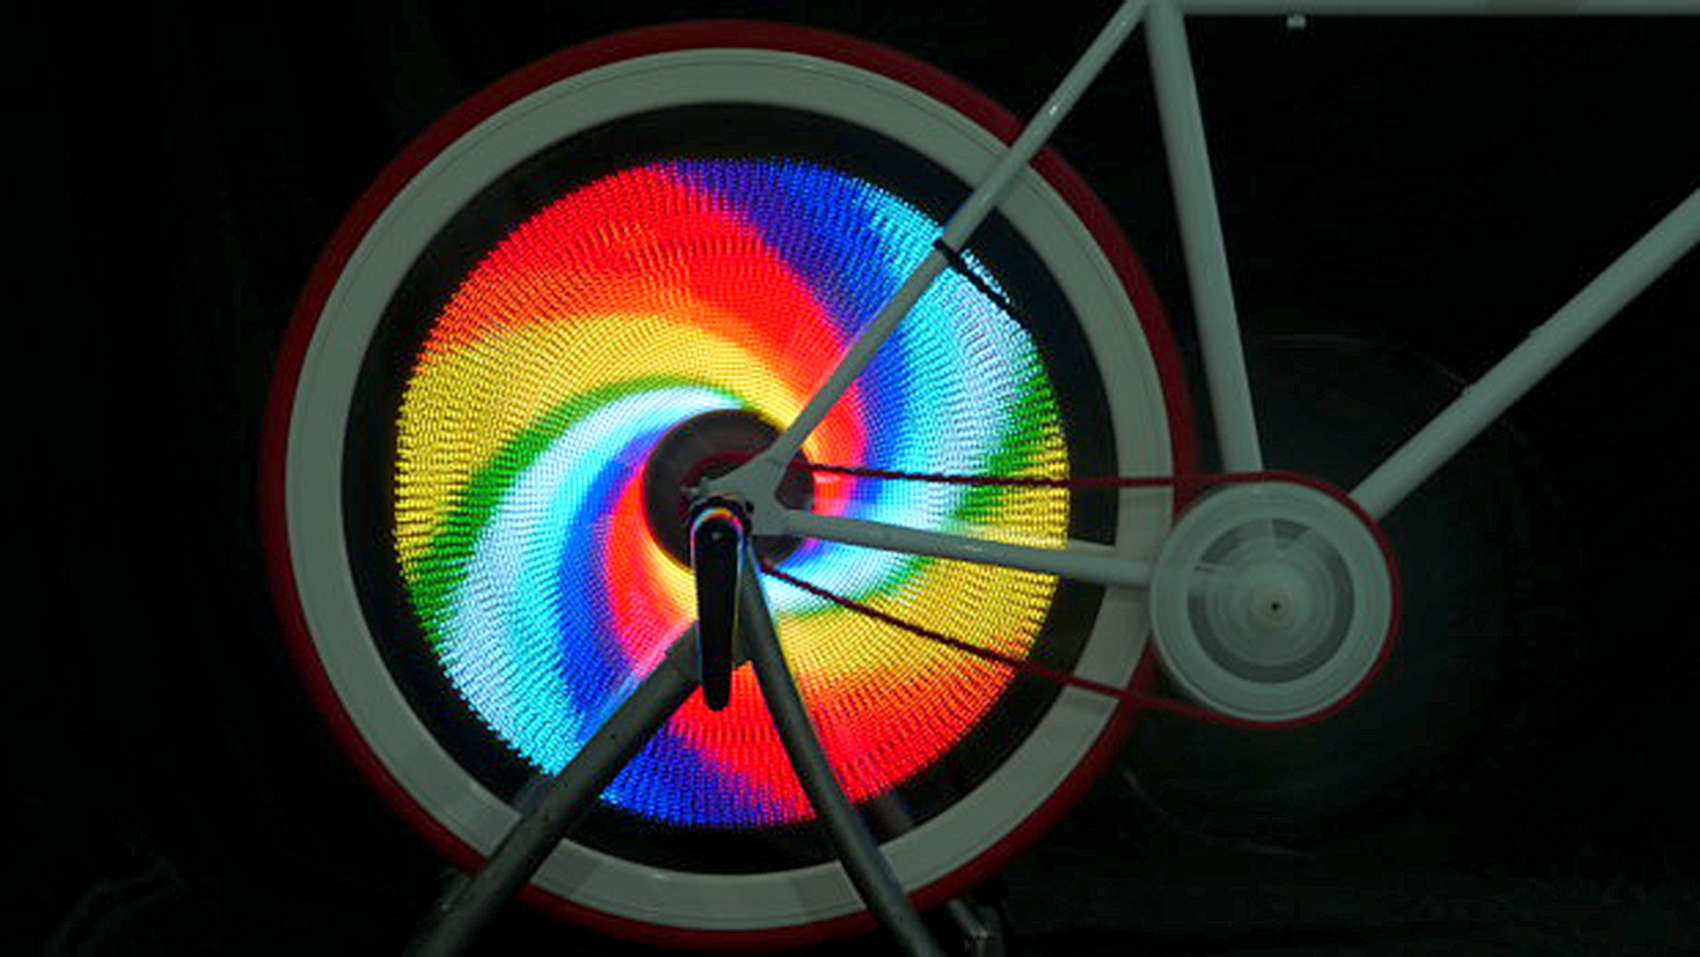 The Balight brings animation to the bike wheel with 376 LED lights.